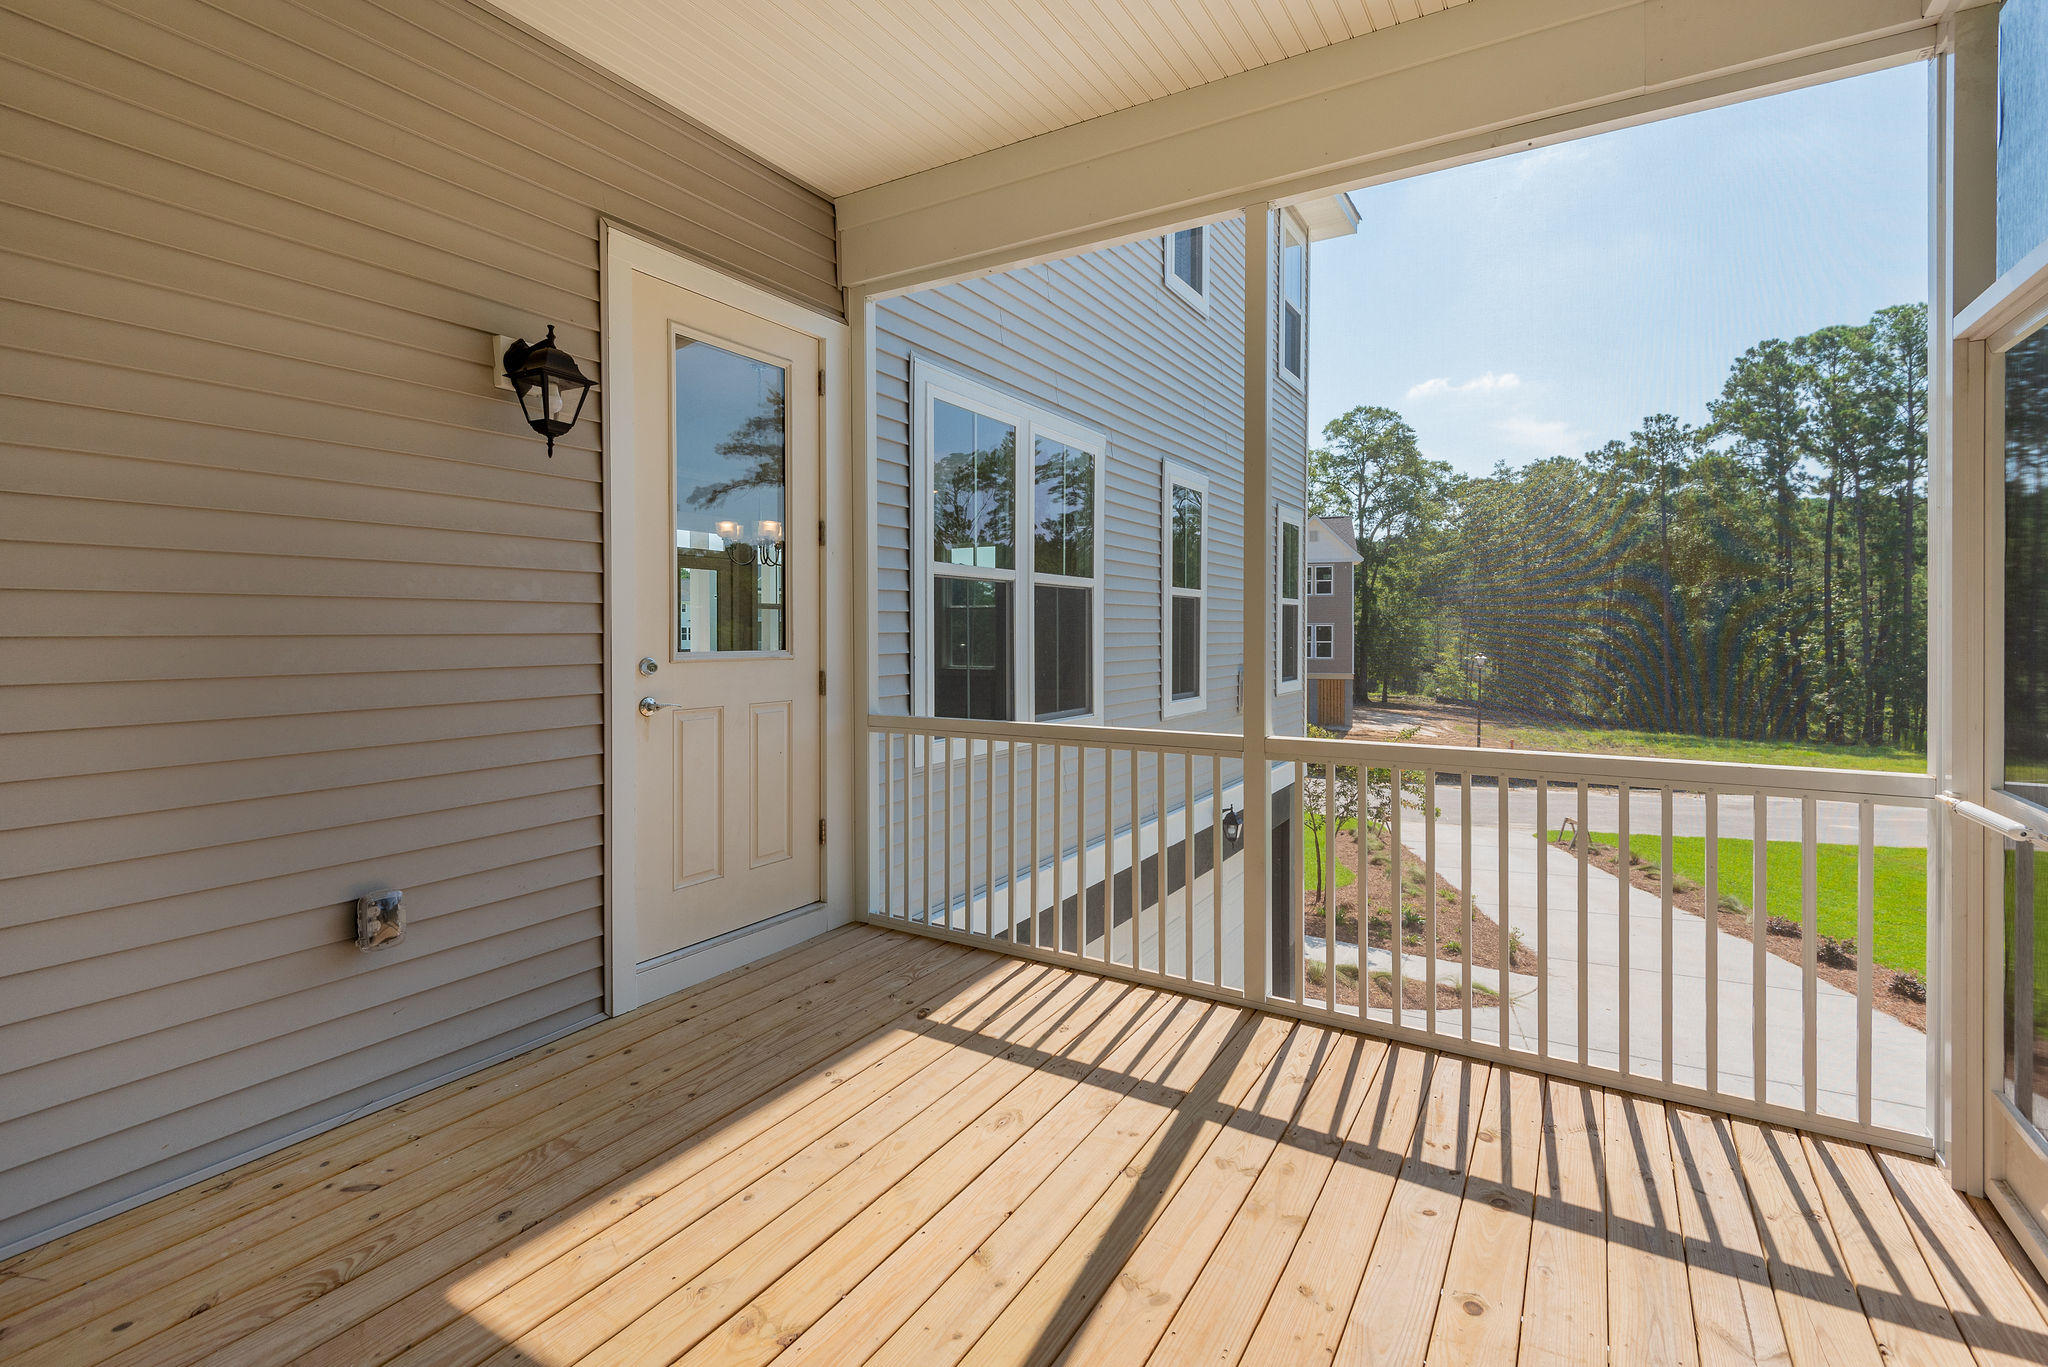 The Cove at Martins Creek Homes For Sale - 117 Martins Point, Wando, SC - 5